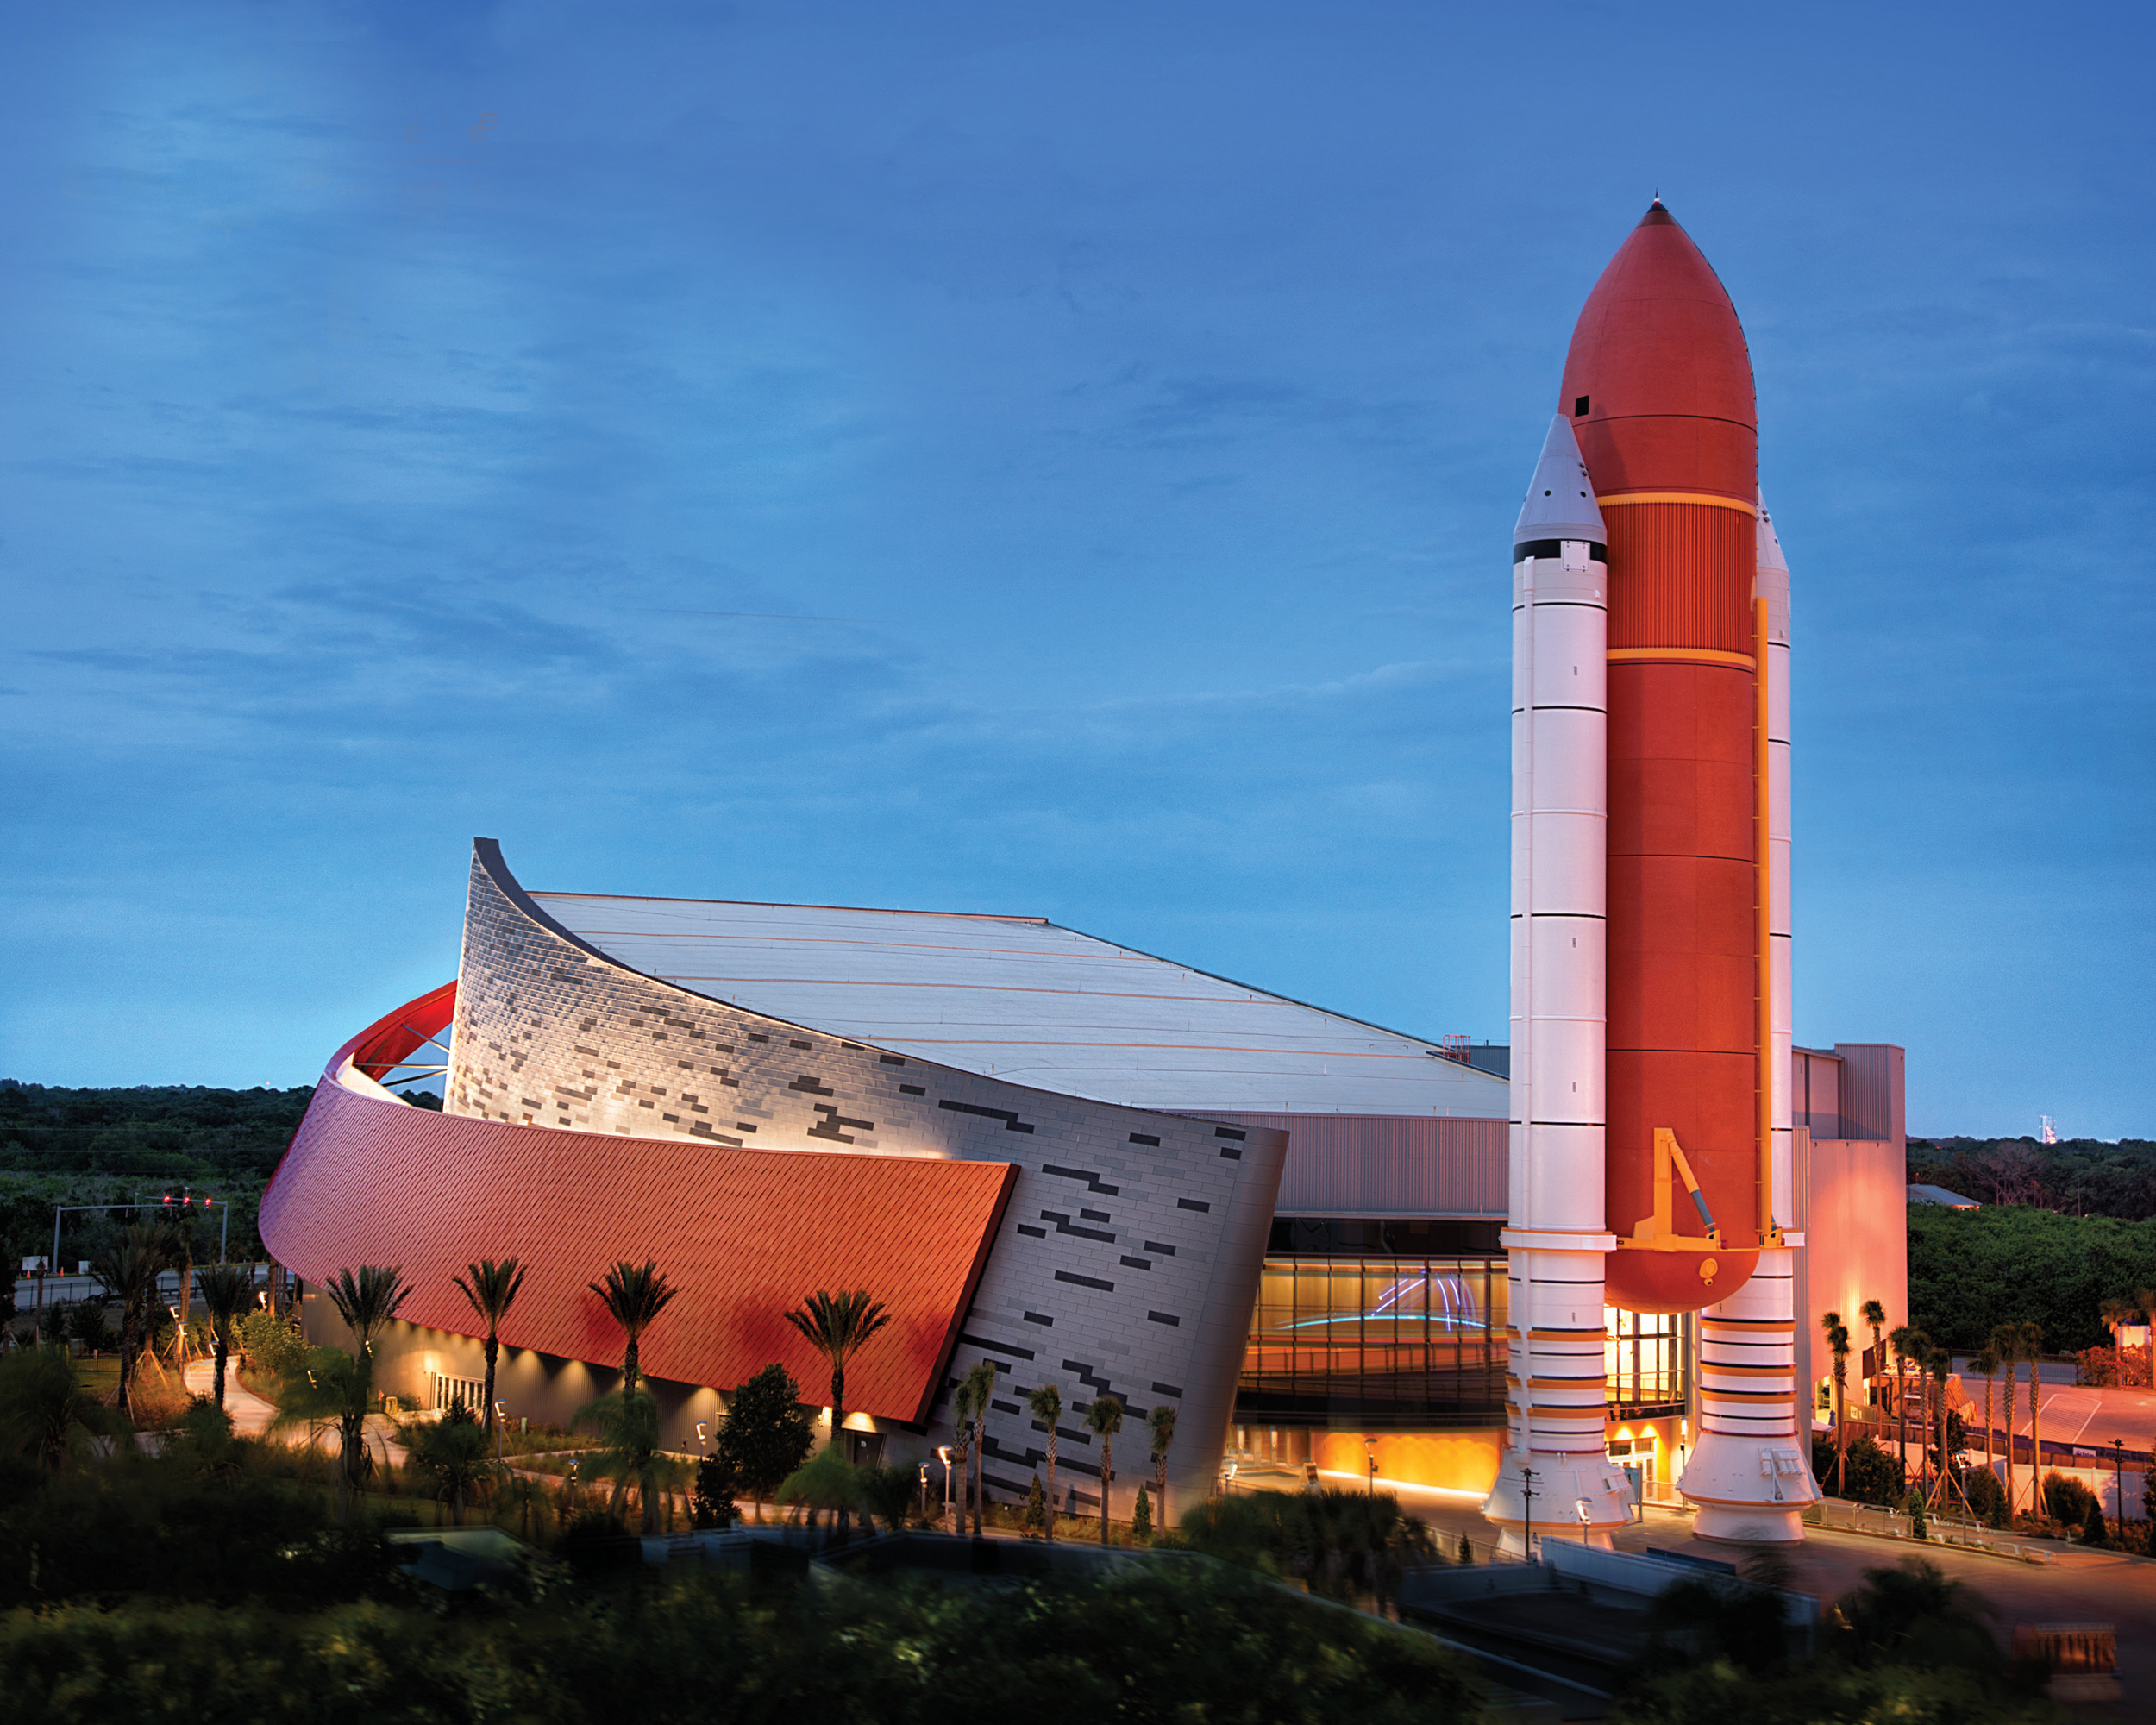 Home of Atlantis Museum, Full-scale Replica Shuttle Stack Kennedy Space Center, FL